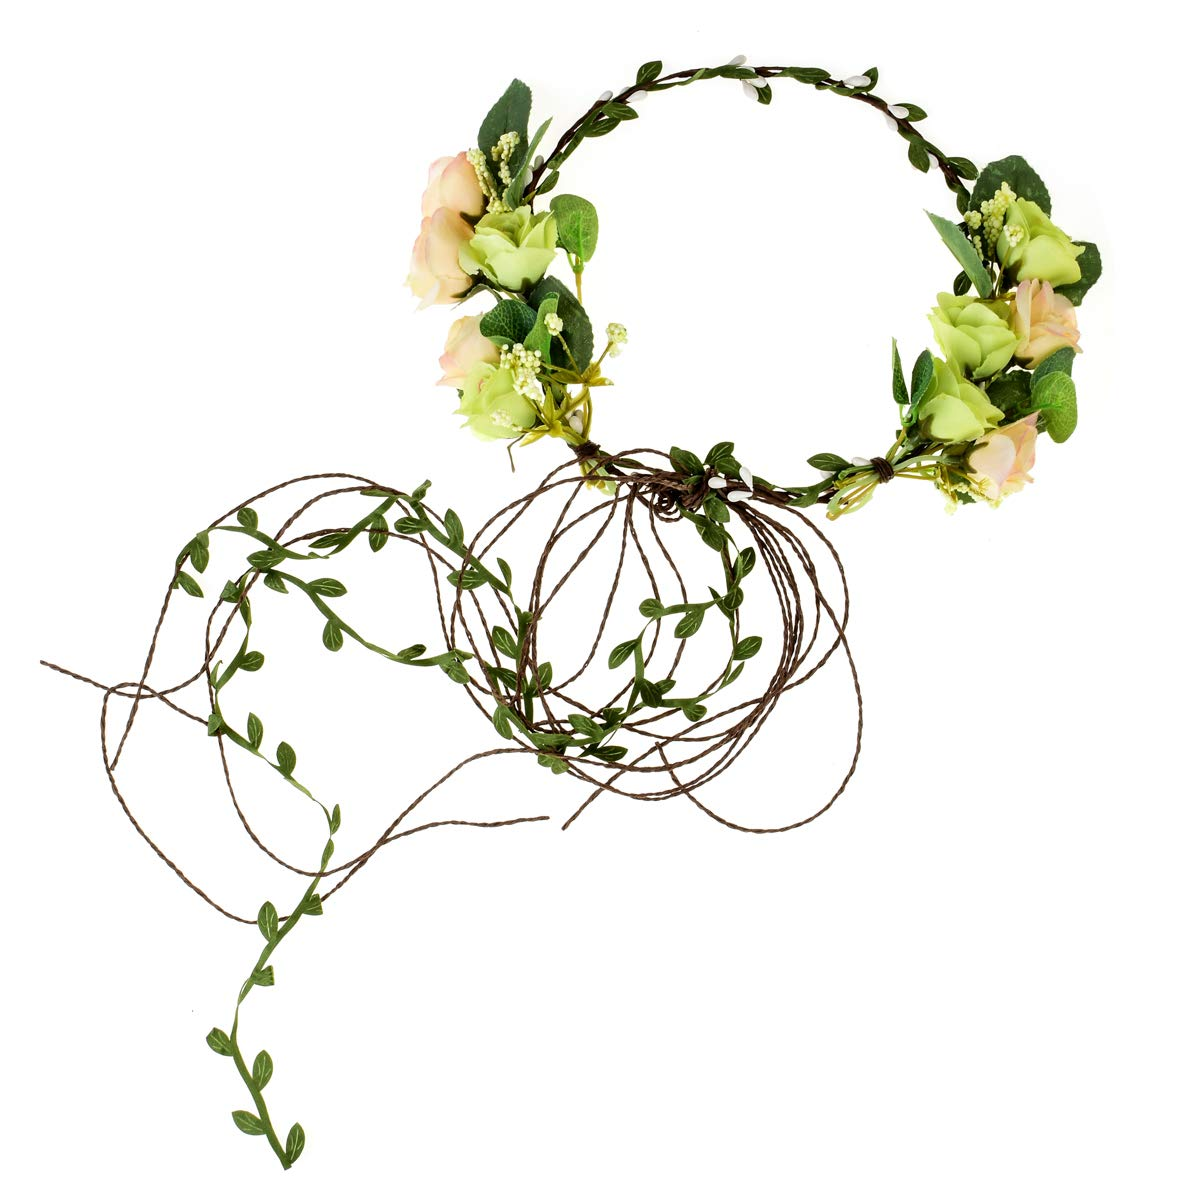 Floral Fall Adjustable Bridal Flower Garland Headband Flower Crown Hair Wreath Halo F-83 (A-Green) by Floral Fall